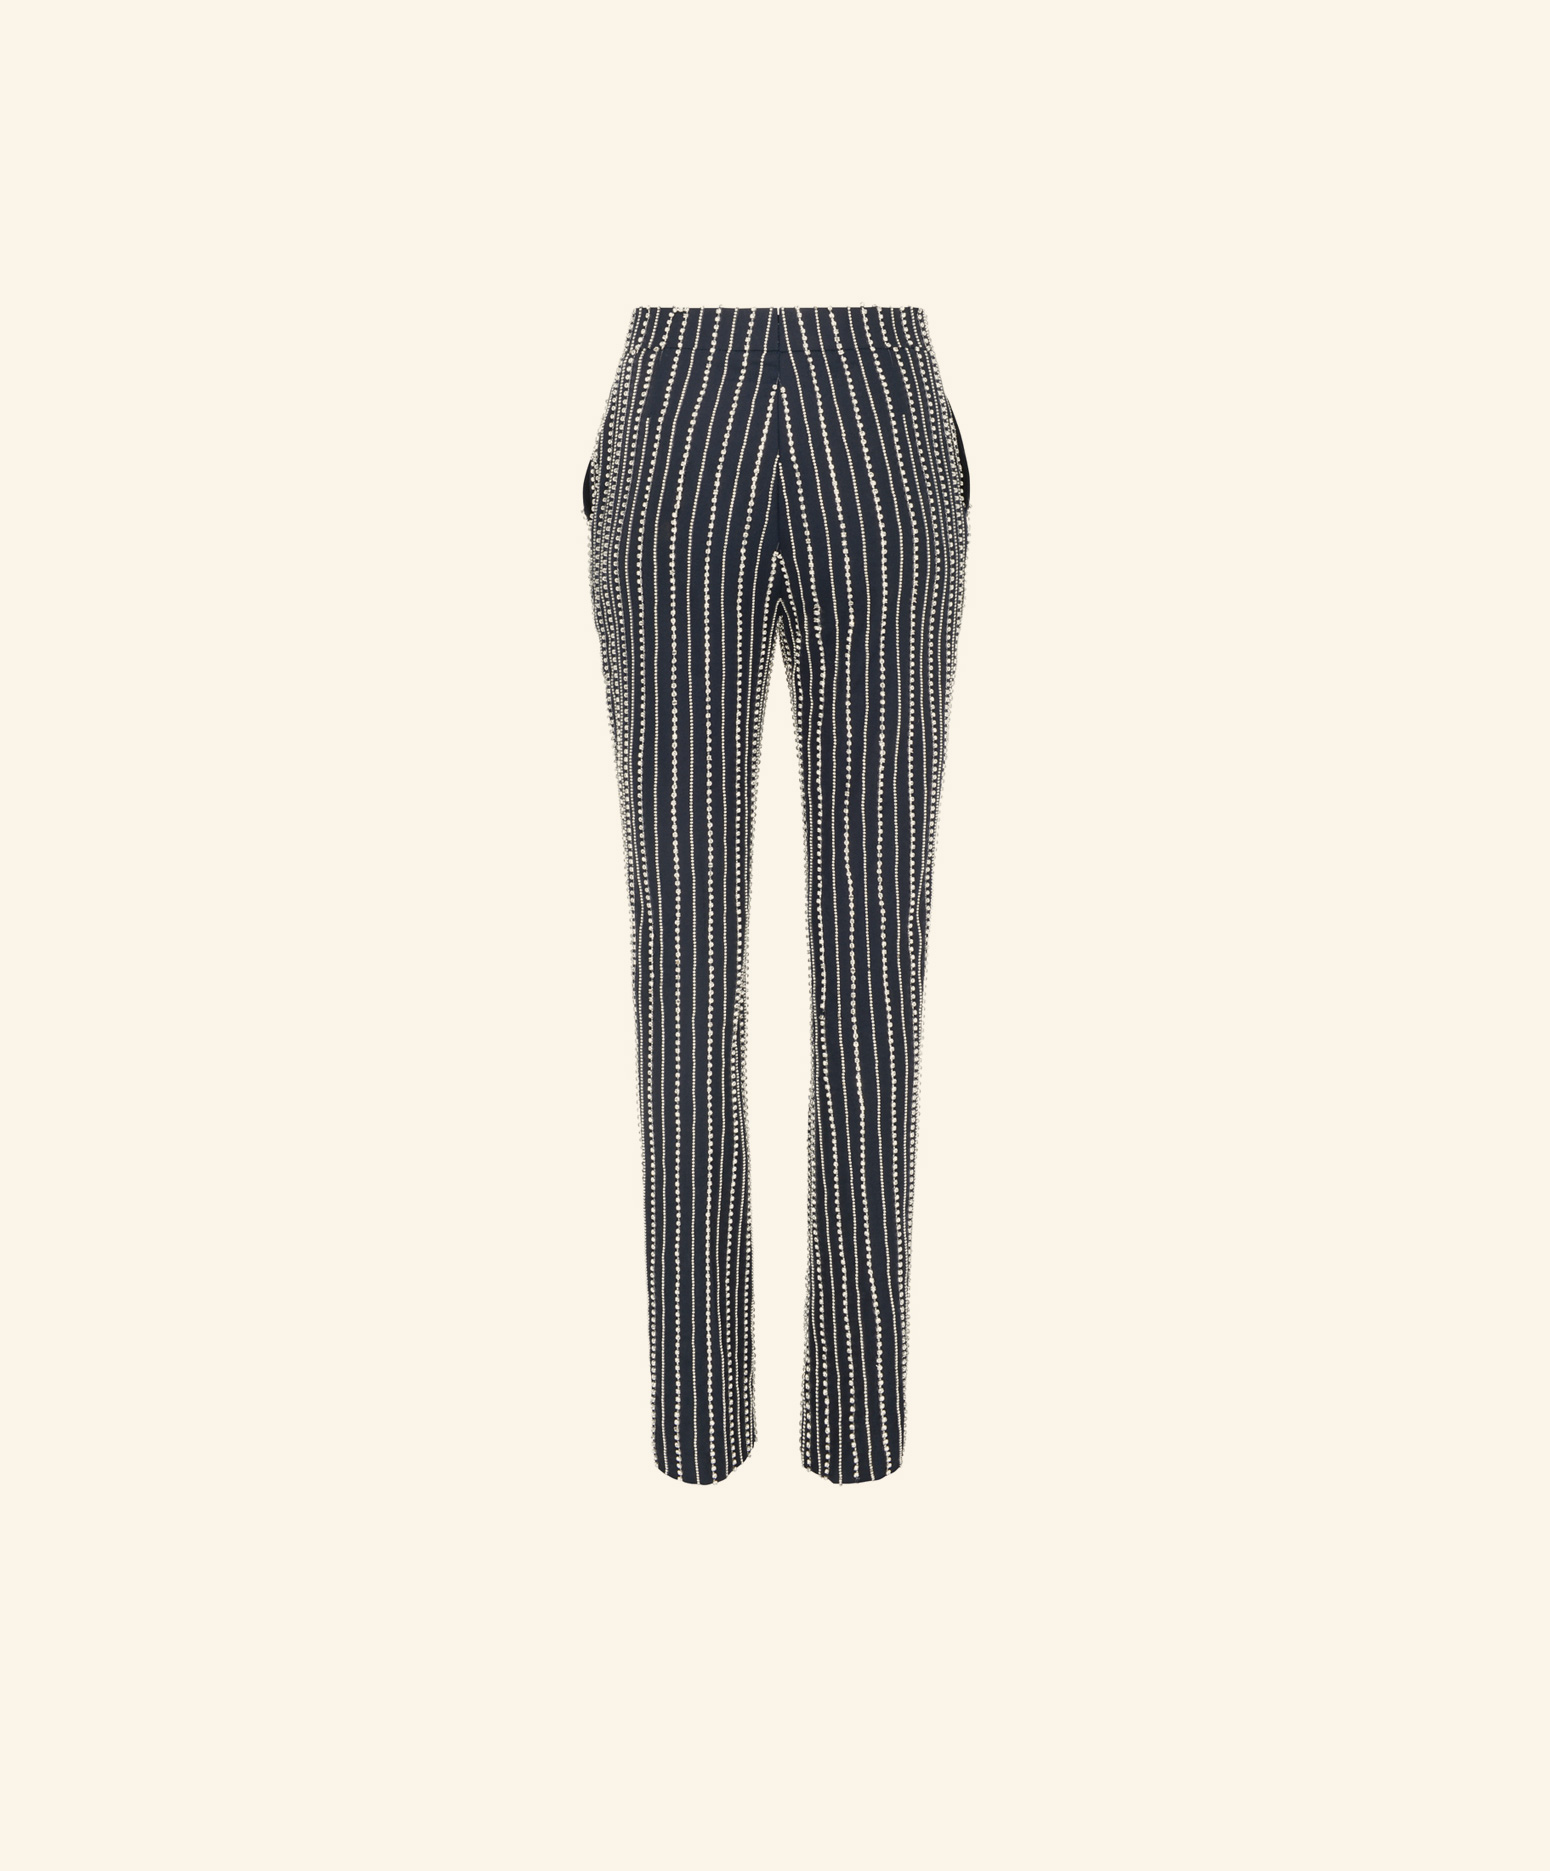 https://www.sannelondon.com/wp-content/uploads/2019/06/trousers-with-clear-crystal-pinstripes-bk.jpg